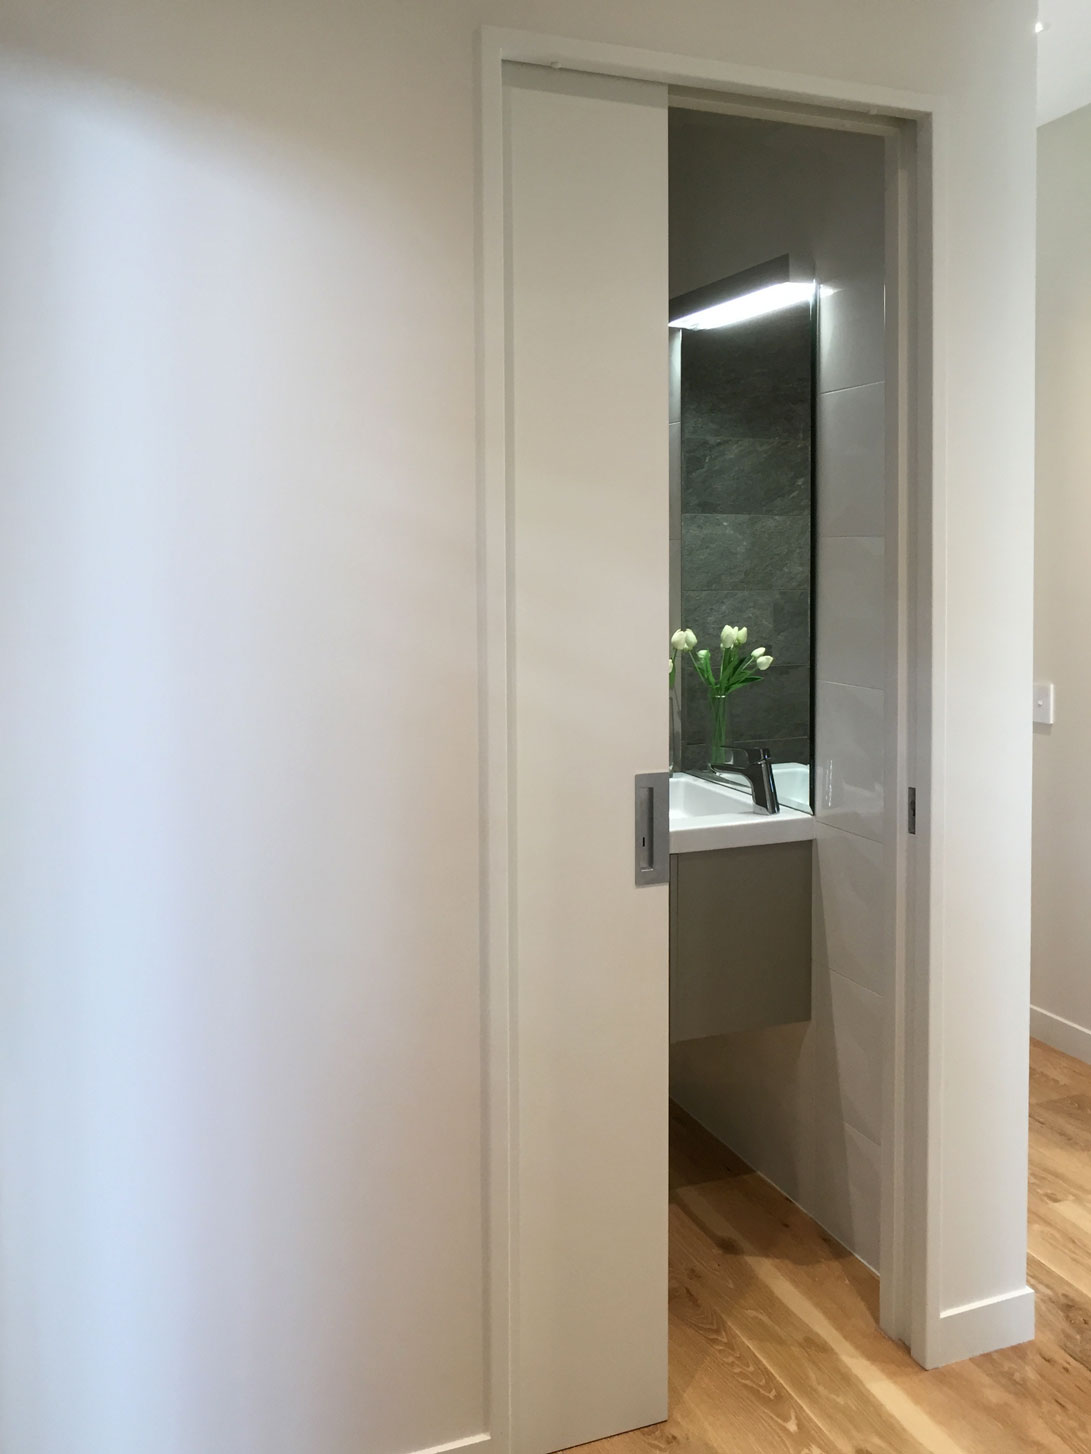 Flush timber door with CL400 handle